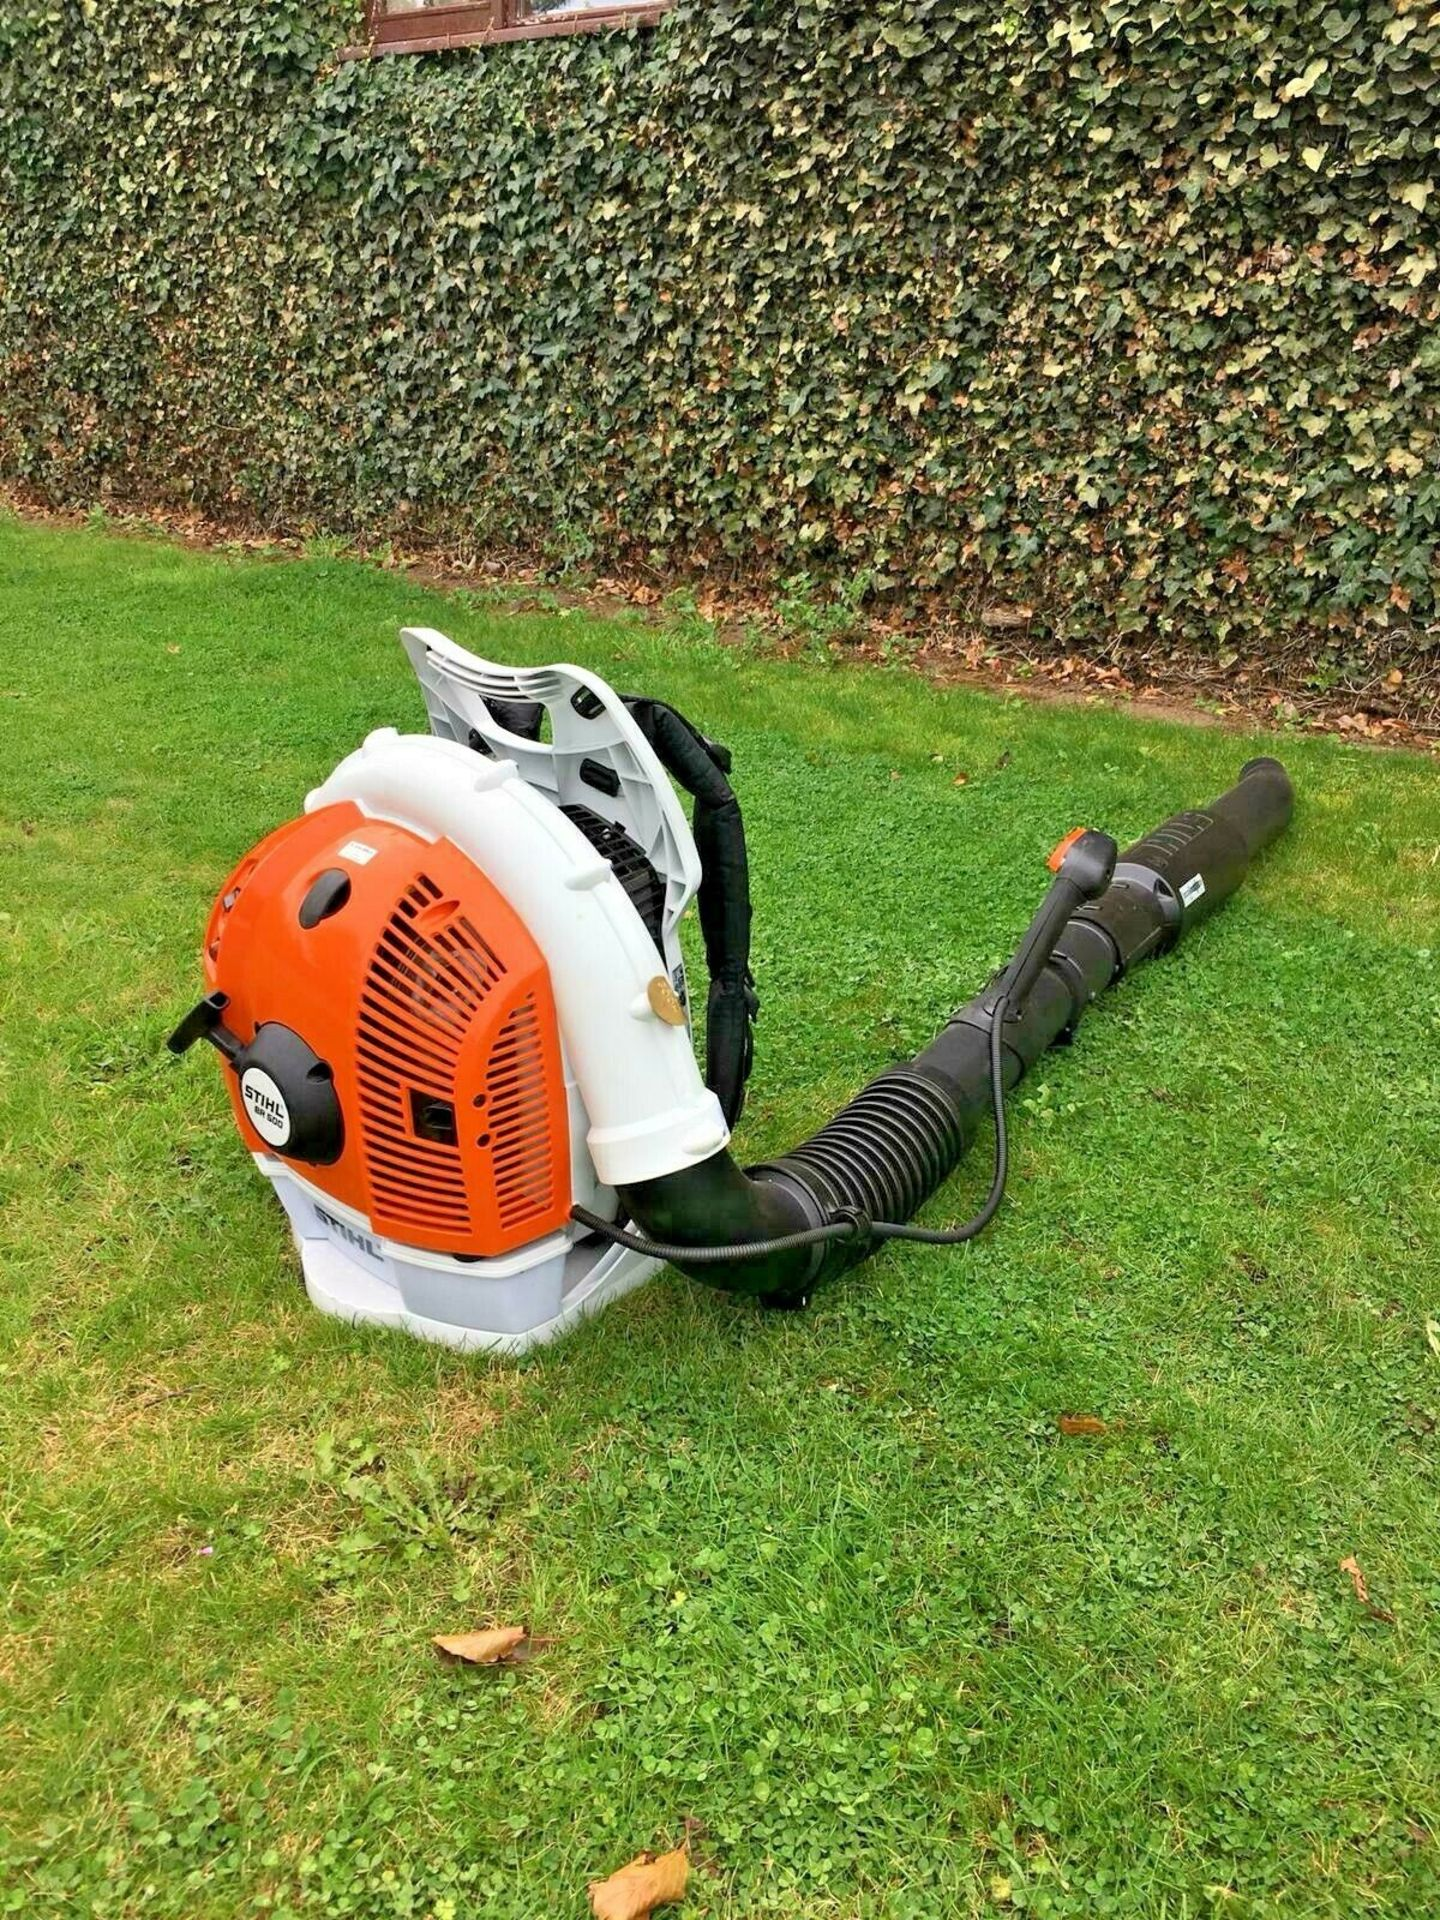 STIHL BACK PACK LEAF BLOWER, MODEL: BR500, MANUFACTURED 07/2017, NEVER USED, CHOICE OF 2 *PLUS VAT* - Image 4 of 7